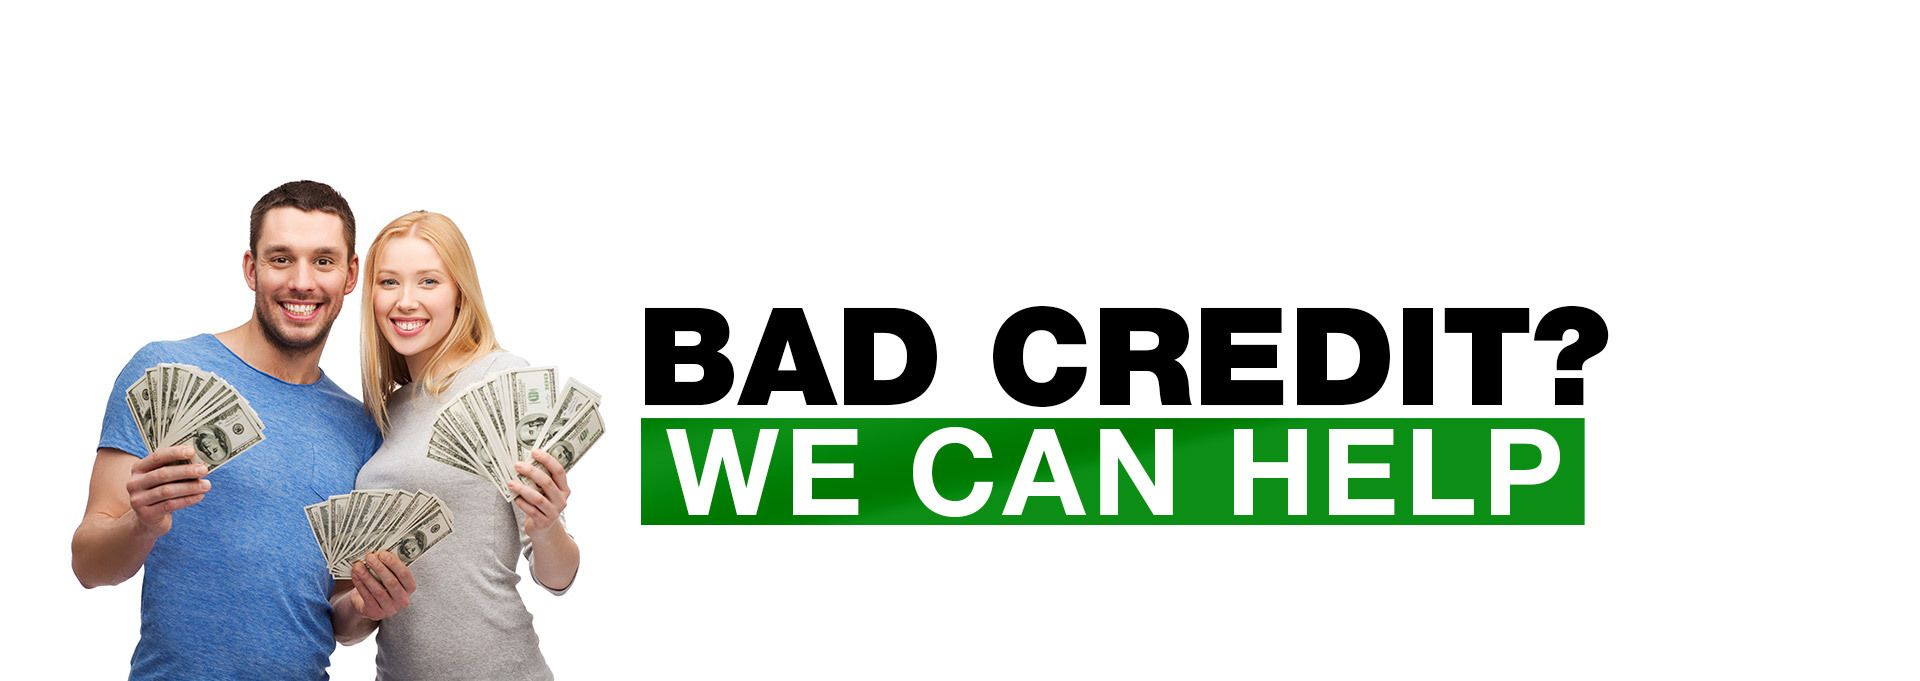 Bad Credit? We Can Help. Car dealership, Used cars